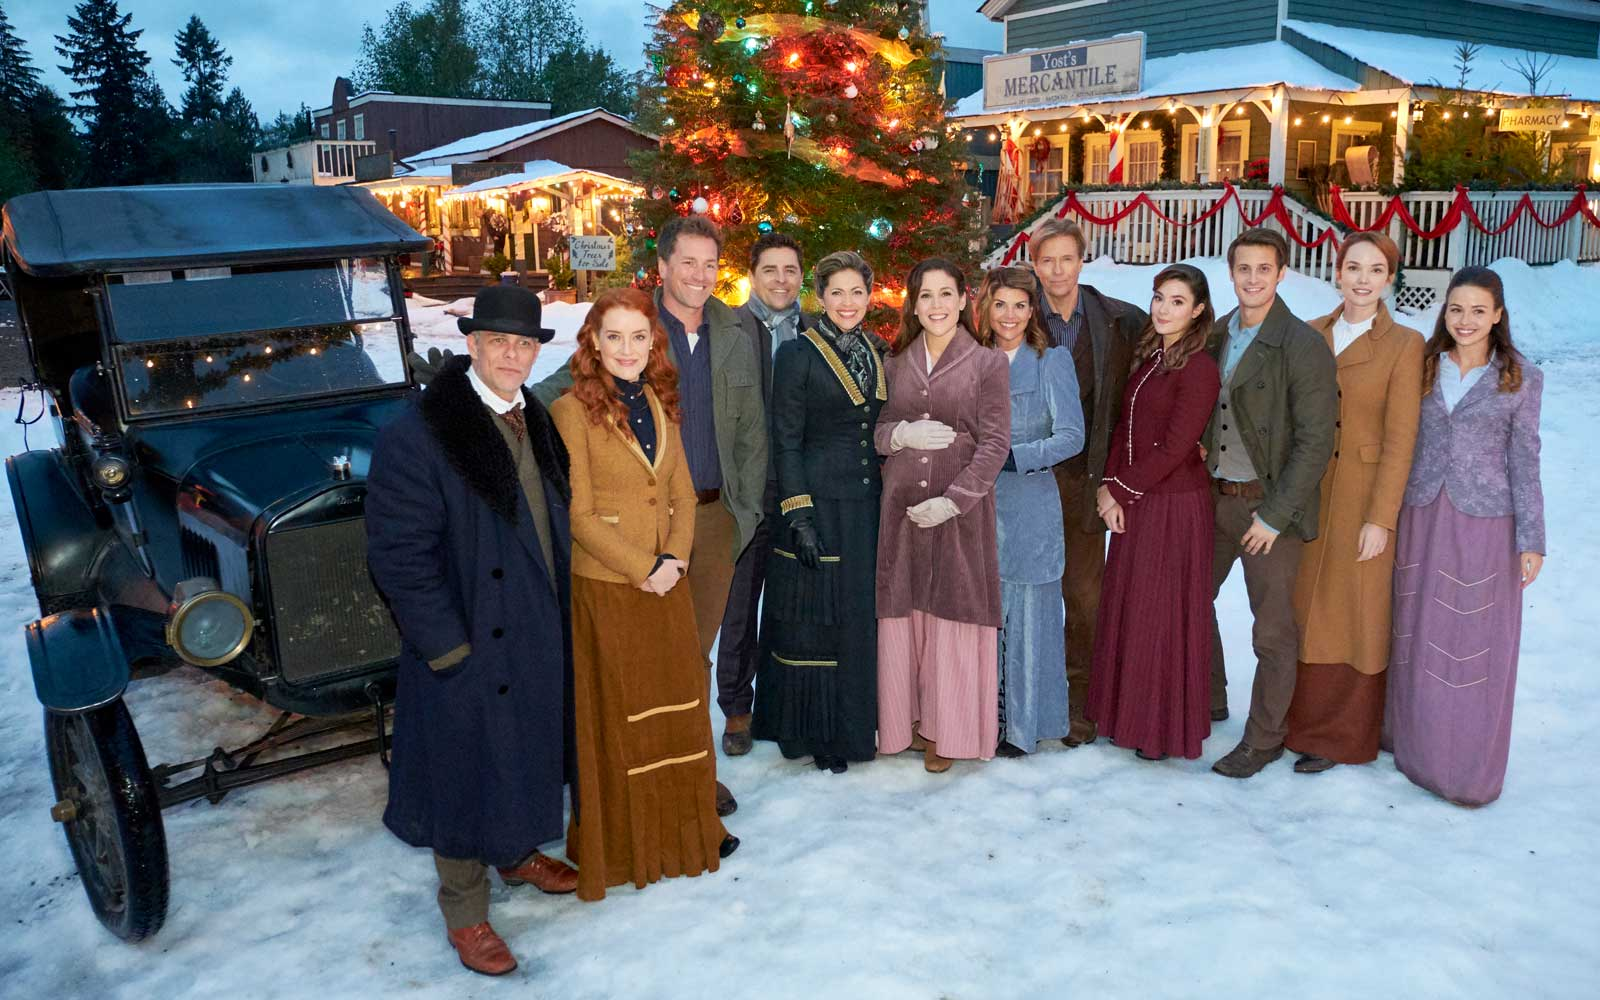 The Hallmark Channel Is Already Casting Extras for a New Christmas Movie — Here's How to Apply